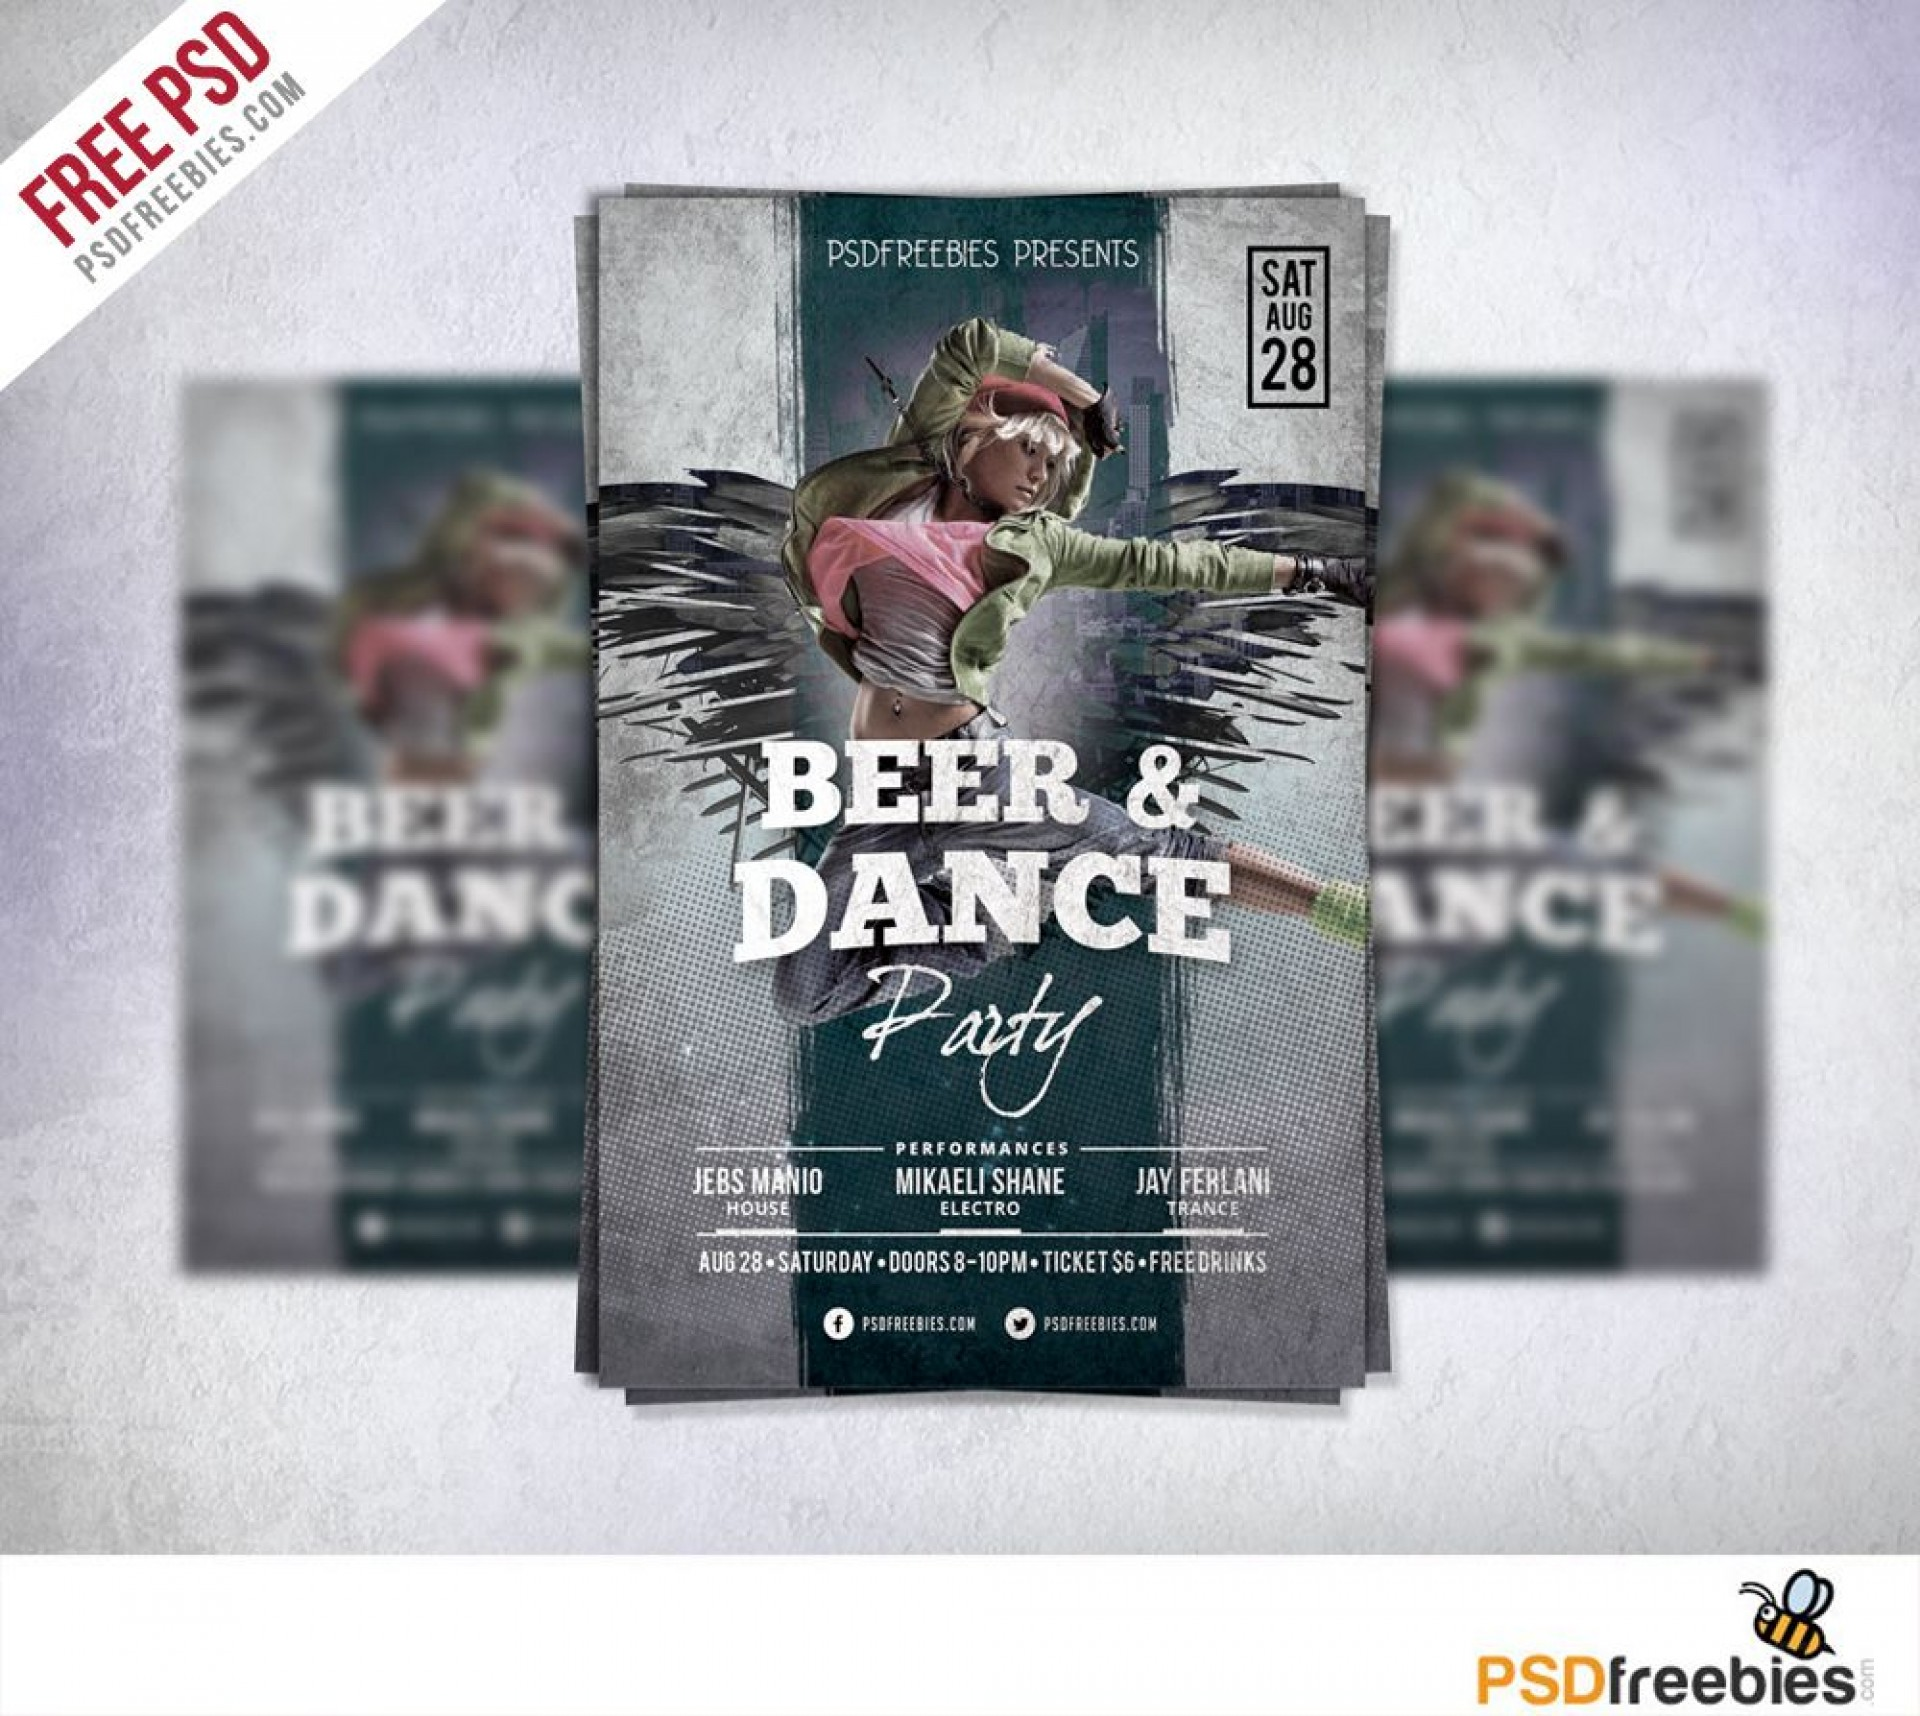 008 Unusual Party Event Flyer Template Free Download Concept 1920